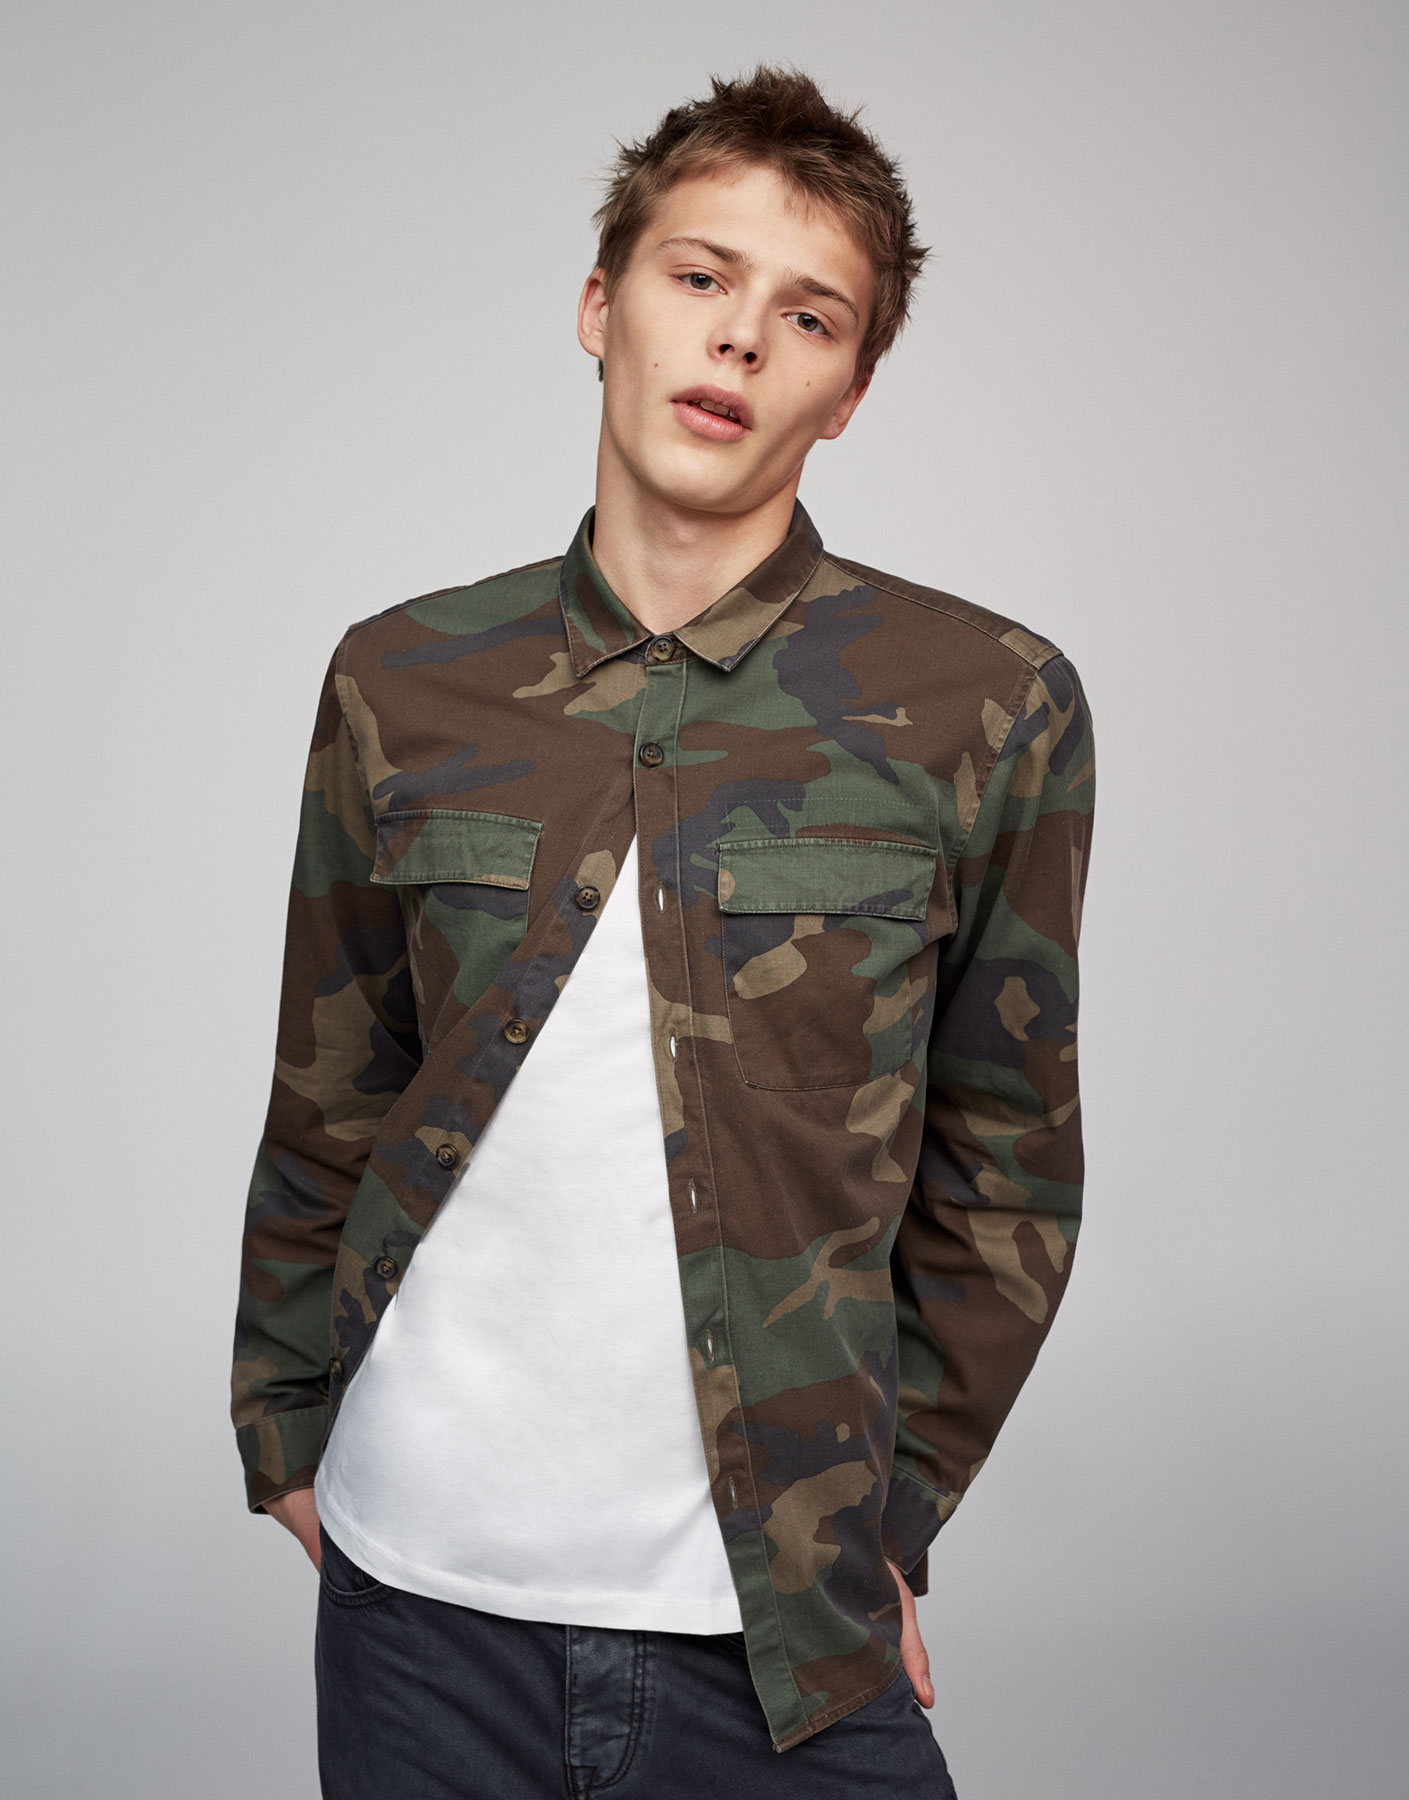 Long sleeve camouflage utility shirt